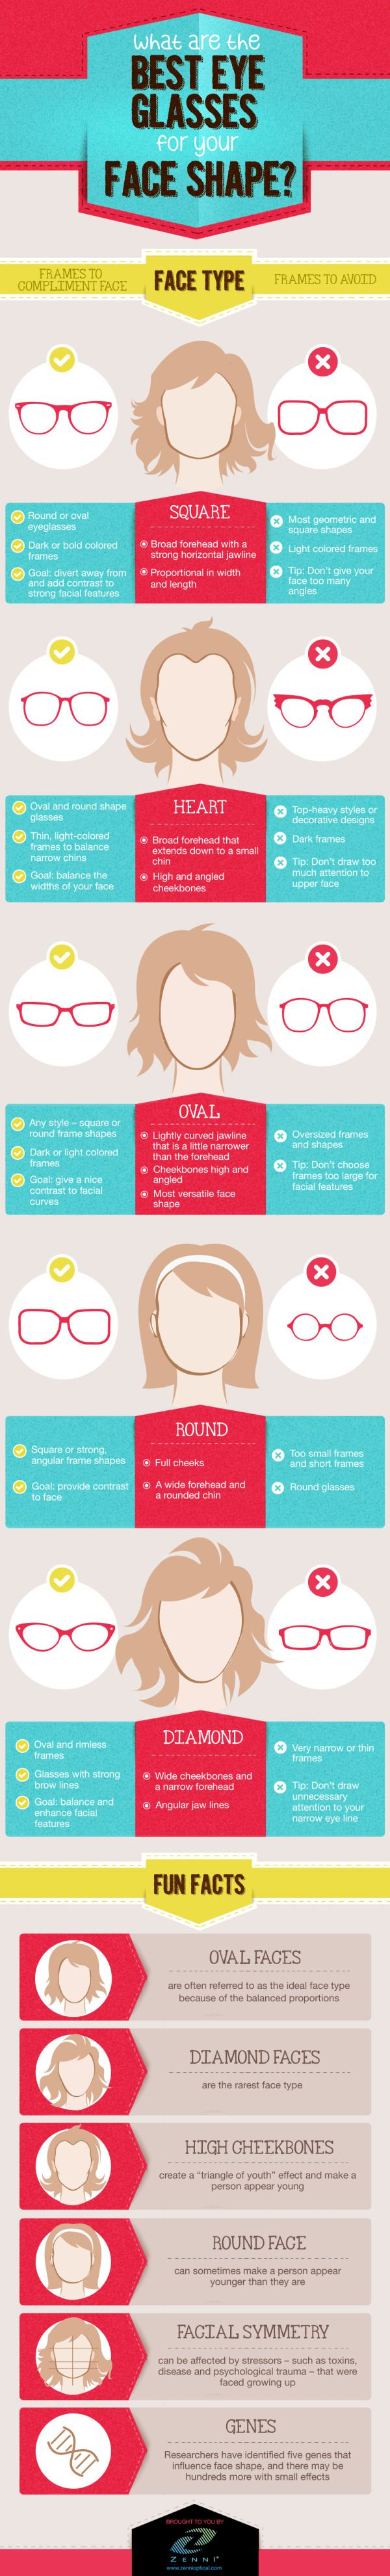 Find the best shape sunglasses for your face ... We can spend hours sitting in front of a mirror at the eyeglass store trying on every style o...